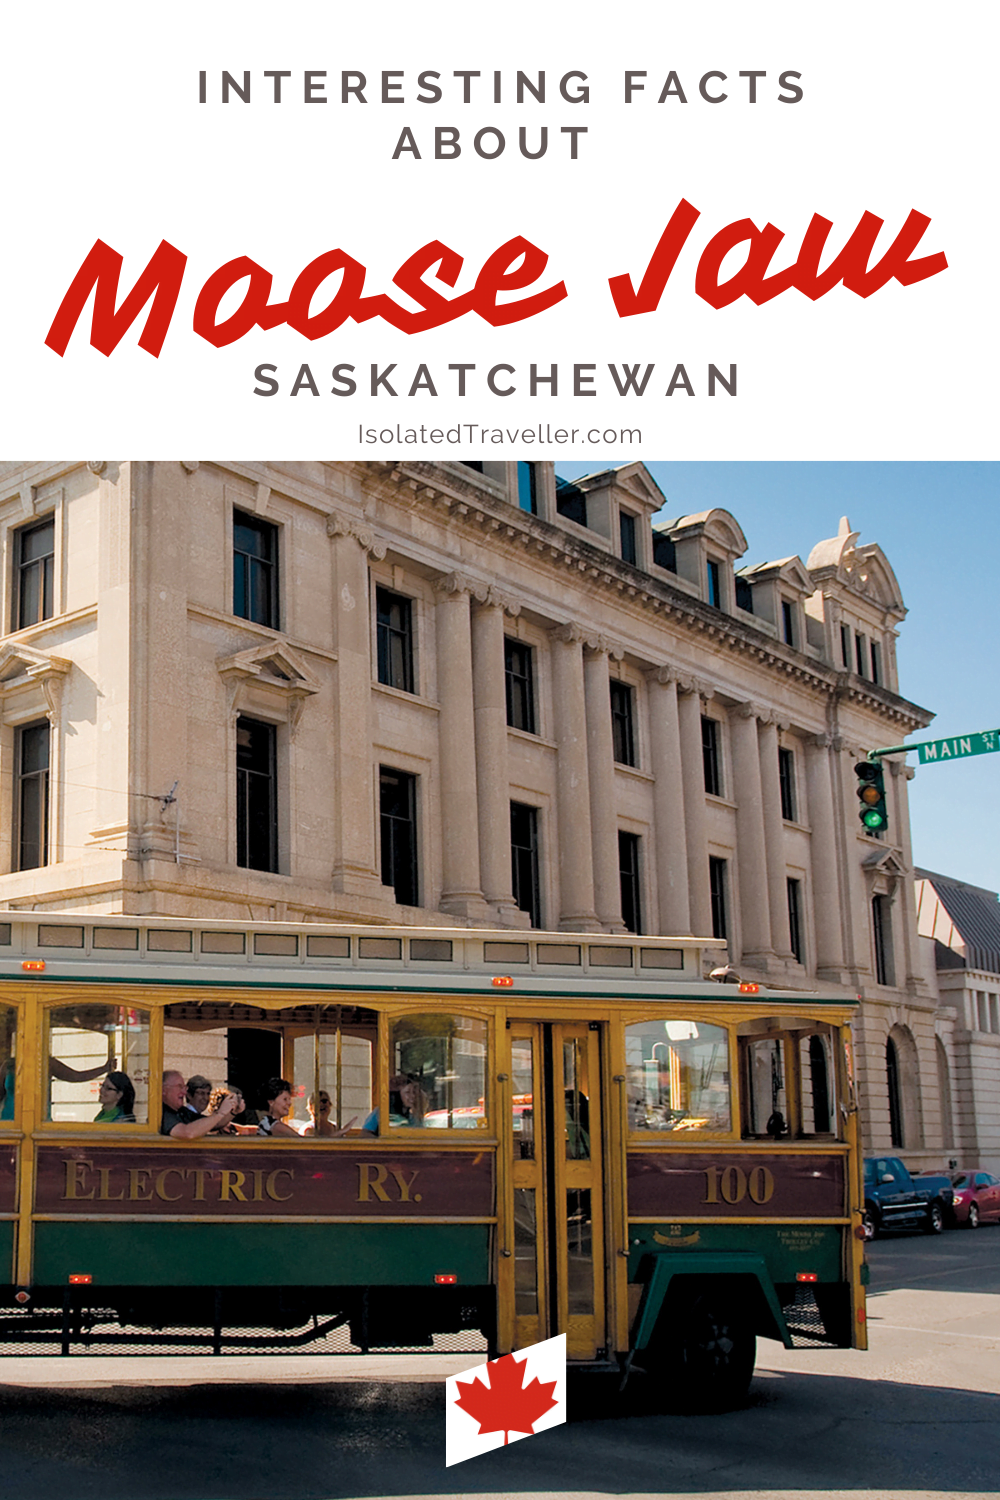 Facts About Moose Jaw